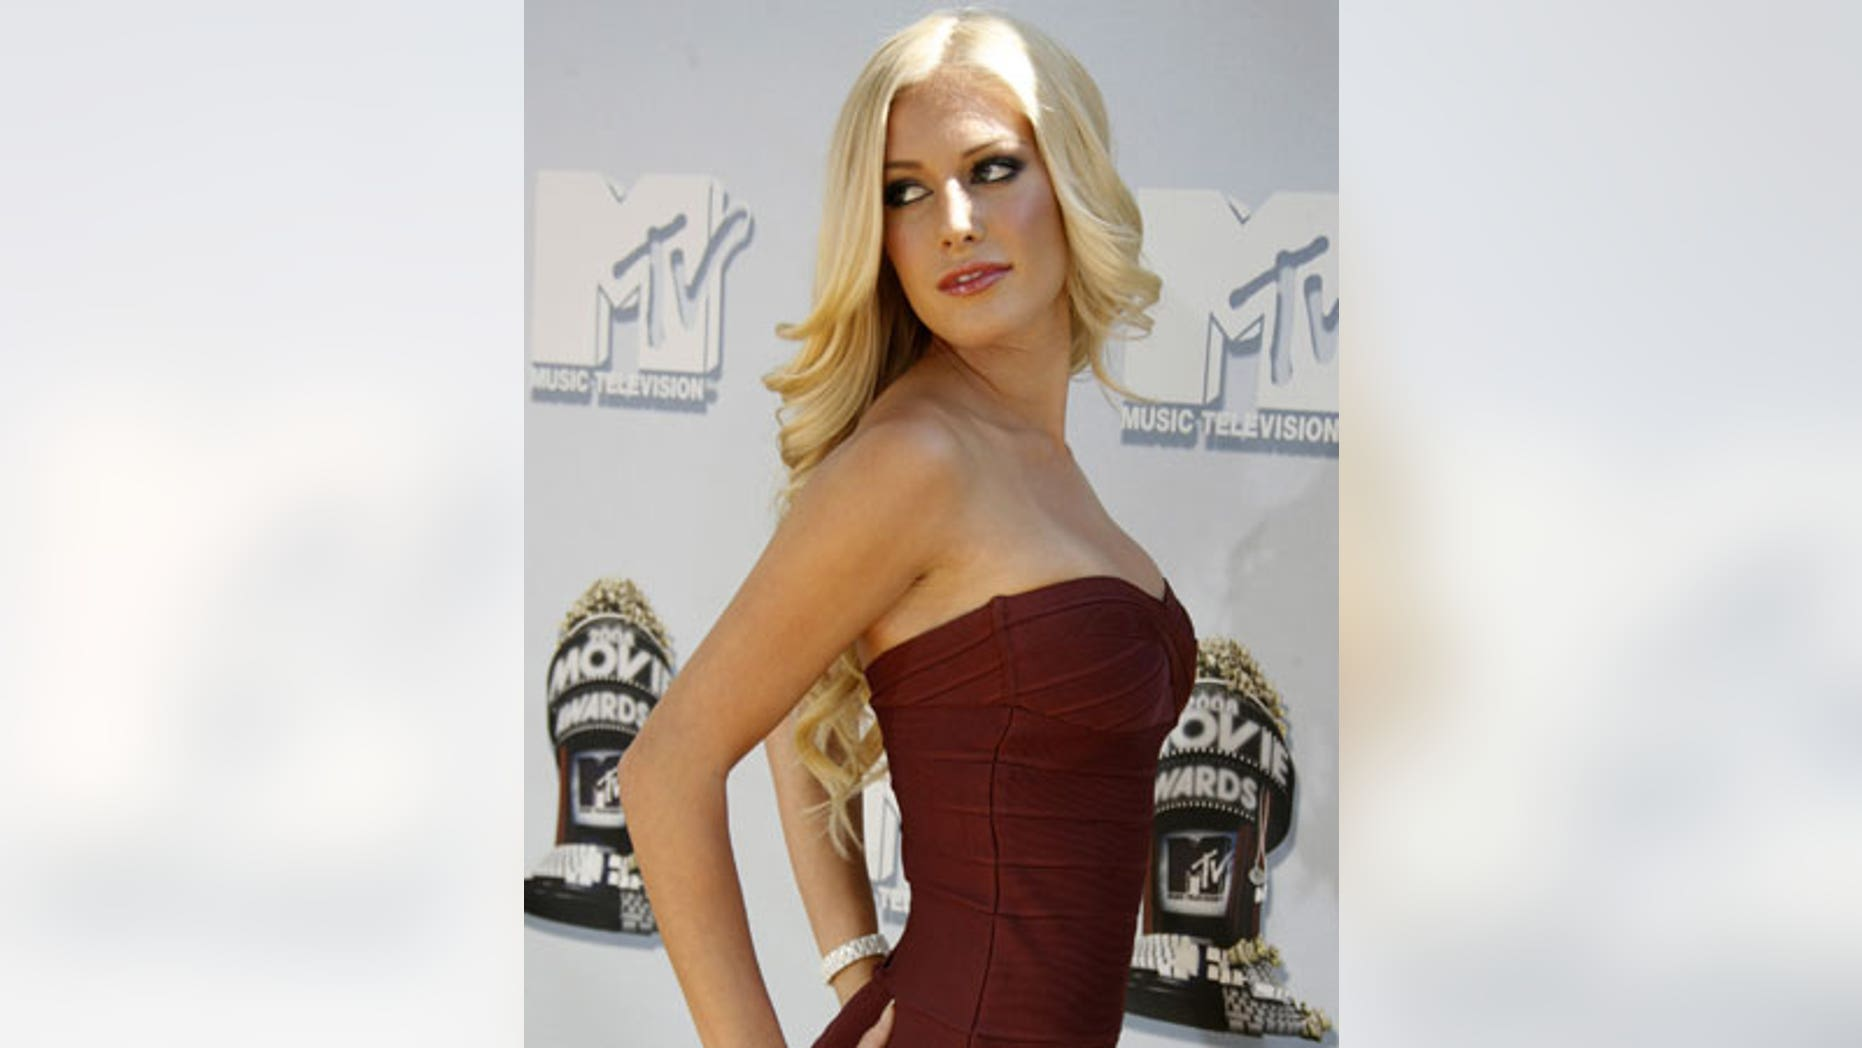 Heidi Montag Pratt will appear in Playboy.